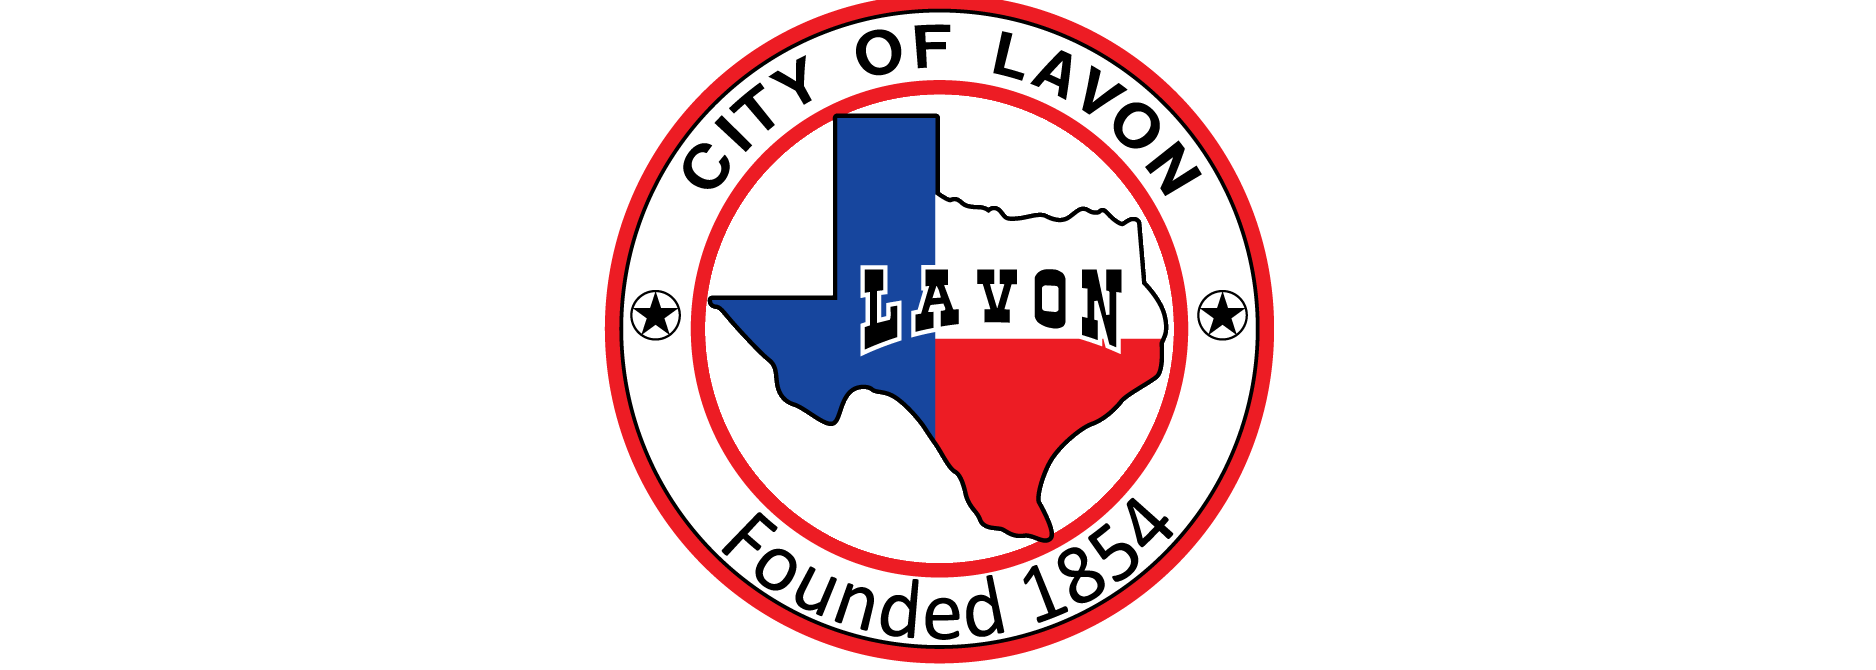 City of Lavon